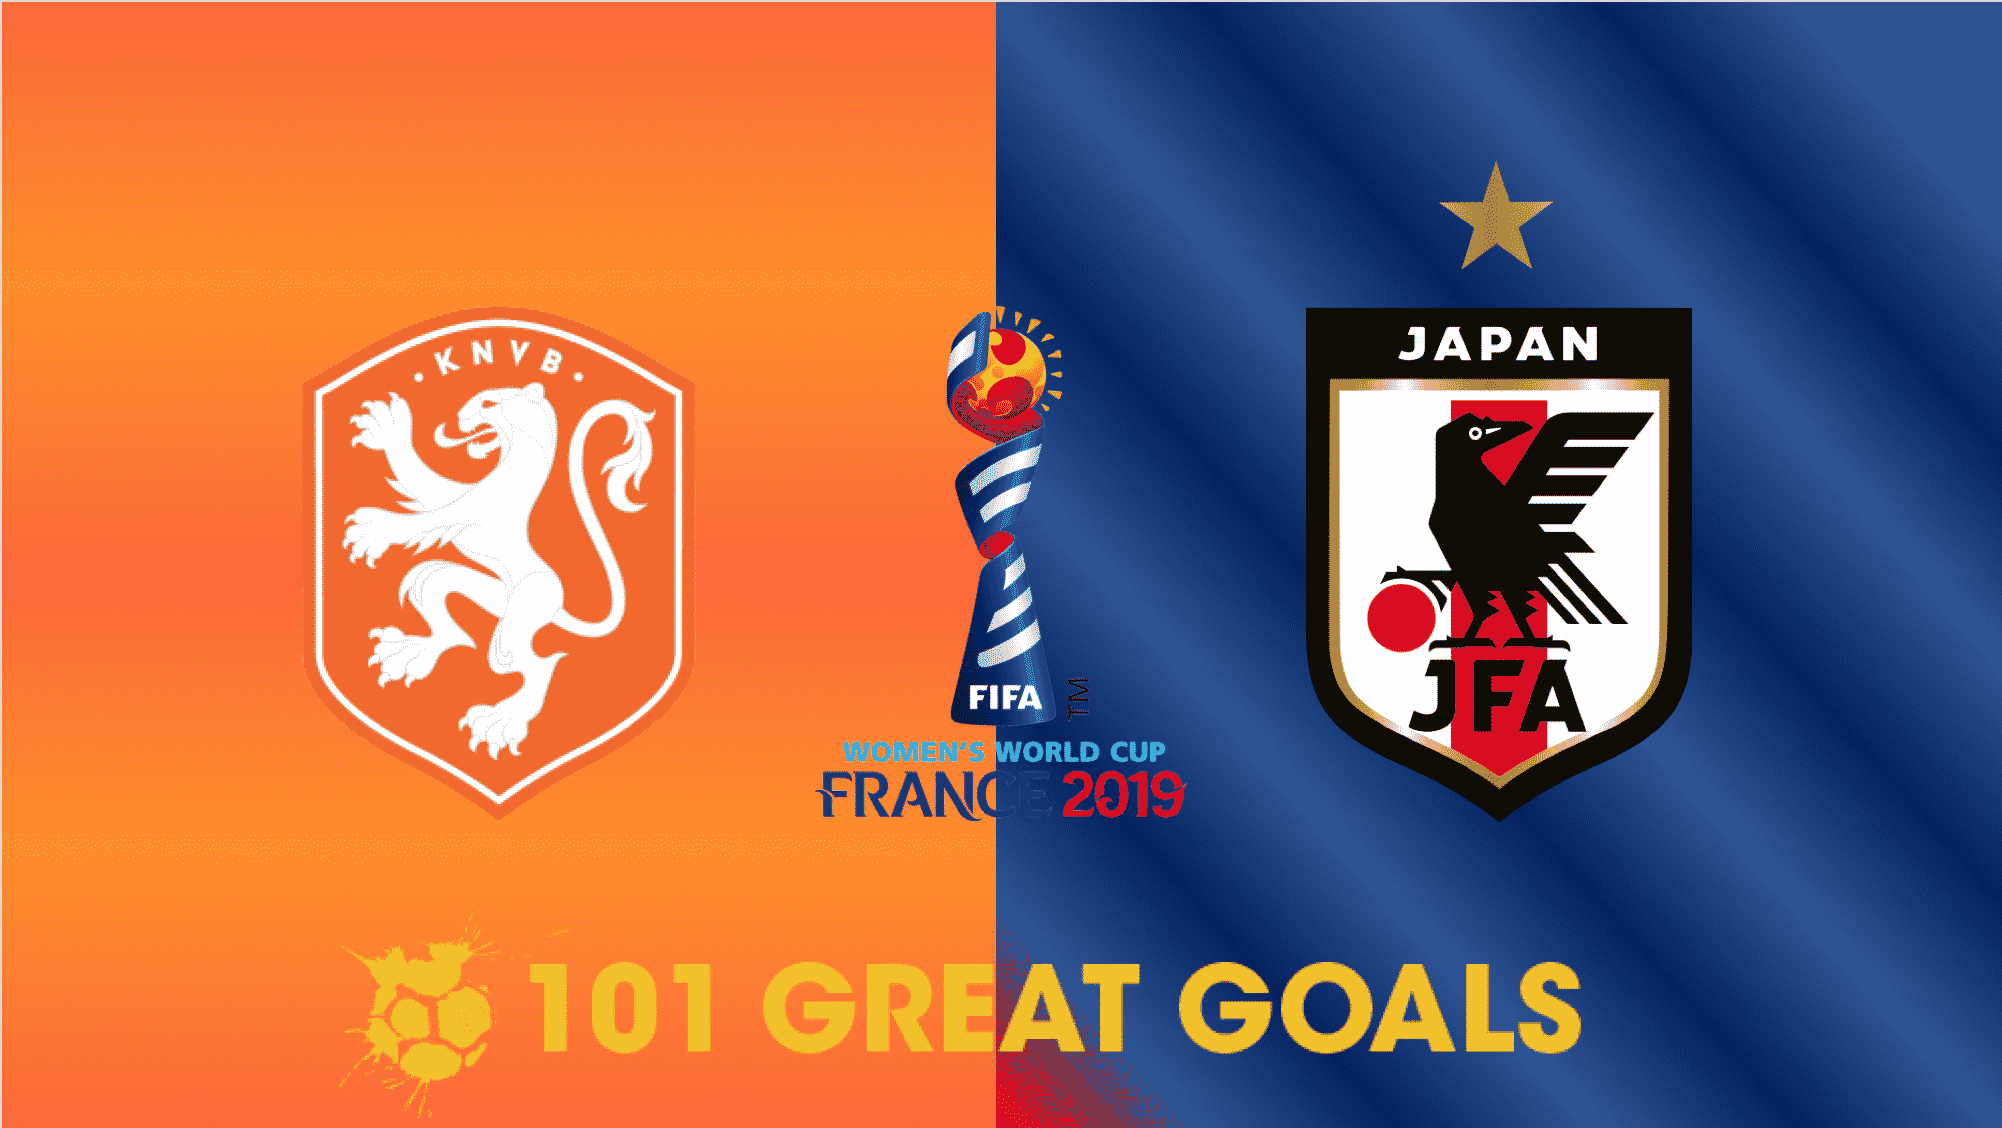 Netherlands vs Japan live streaming